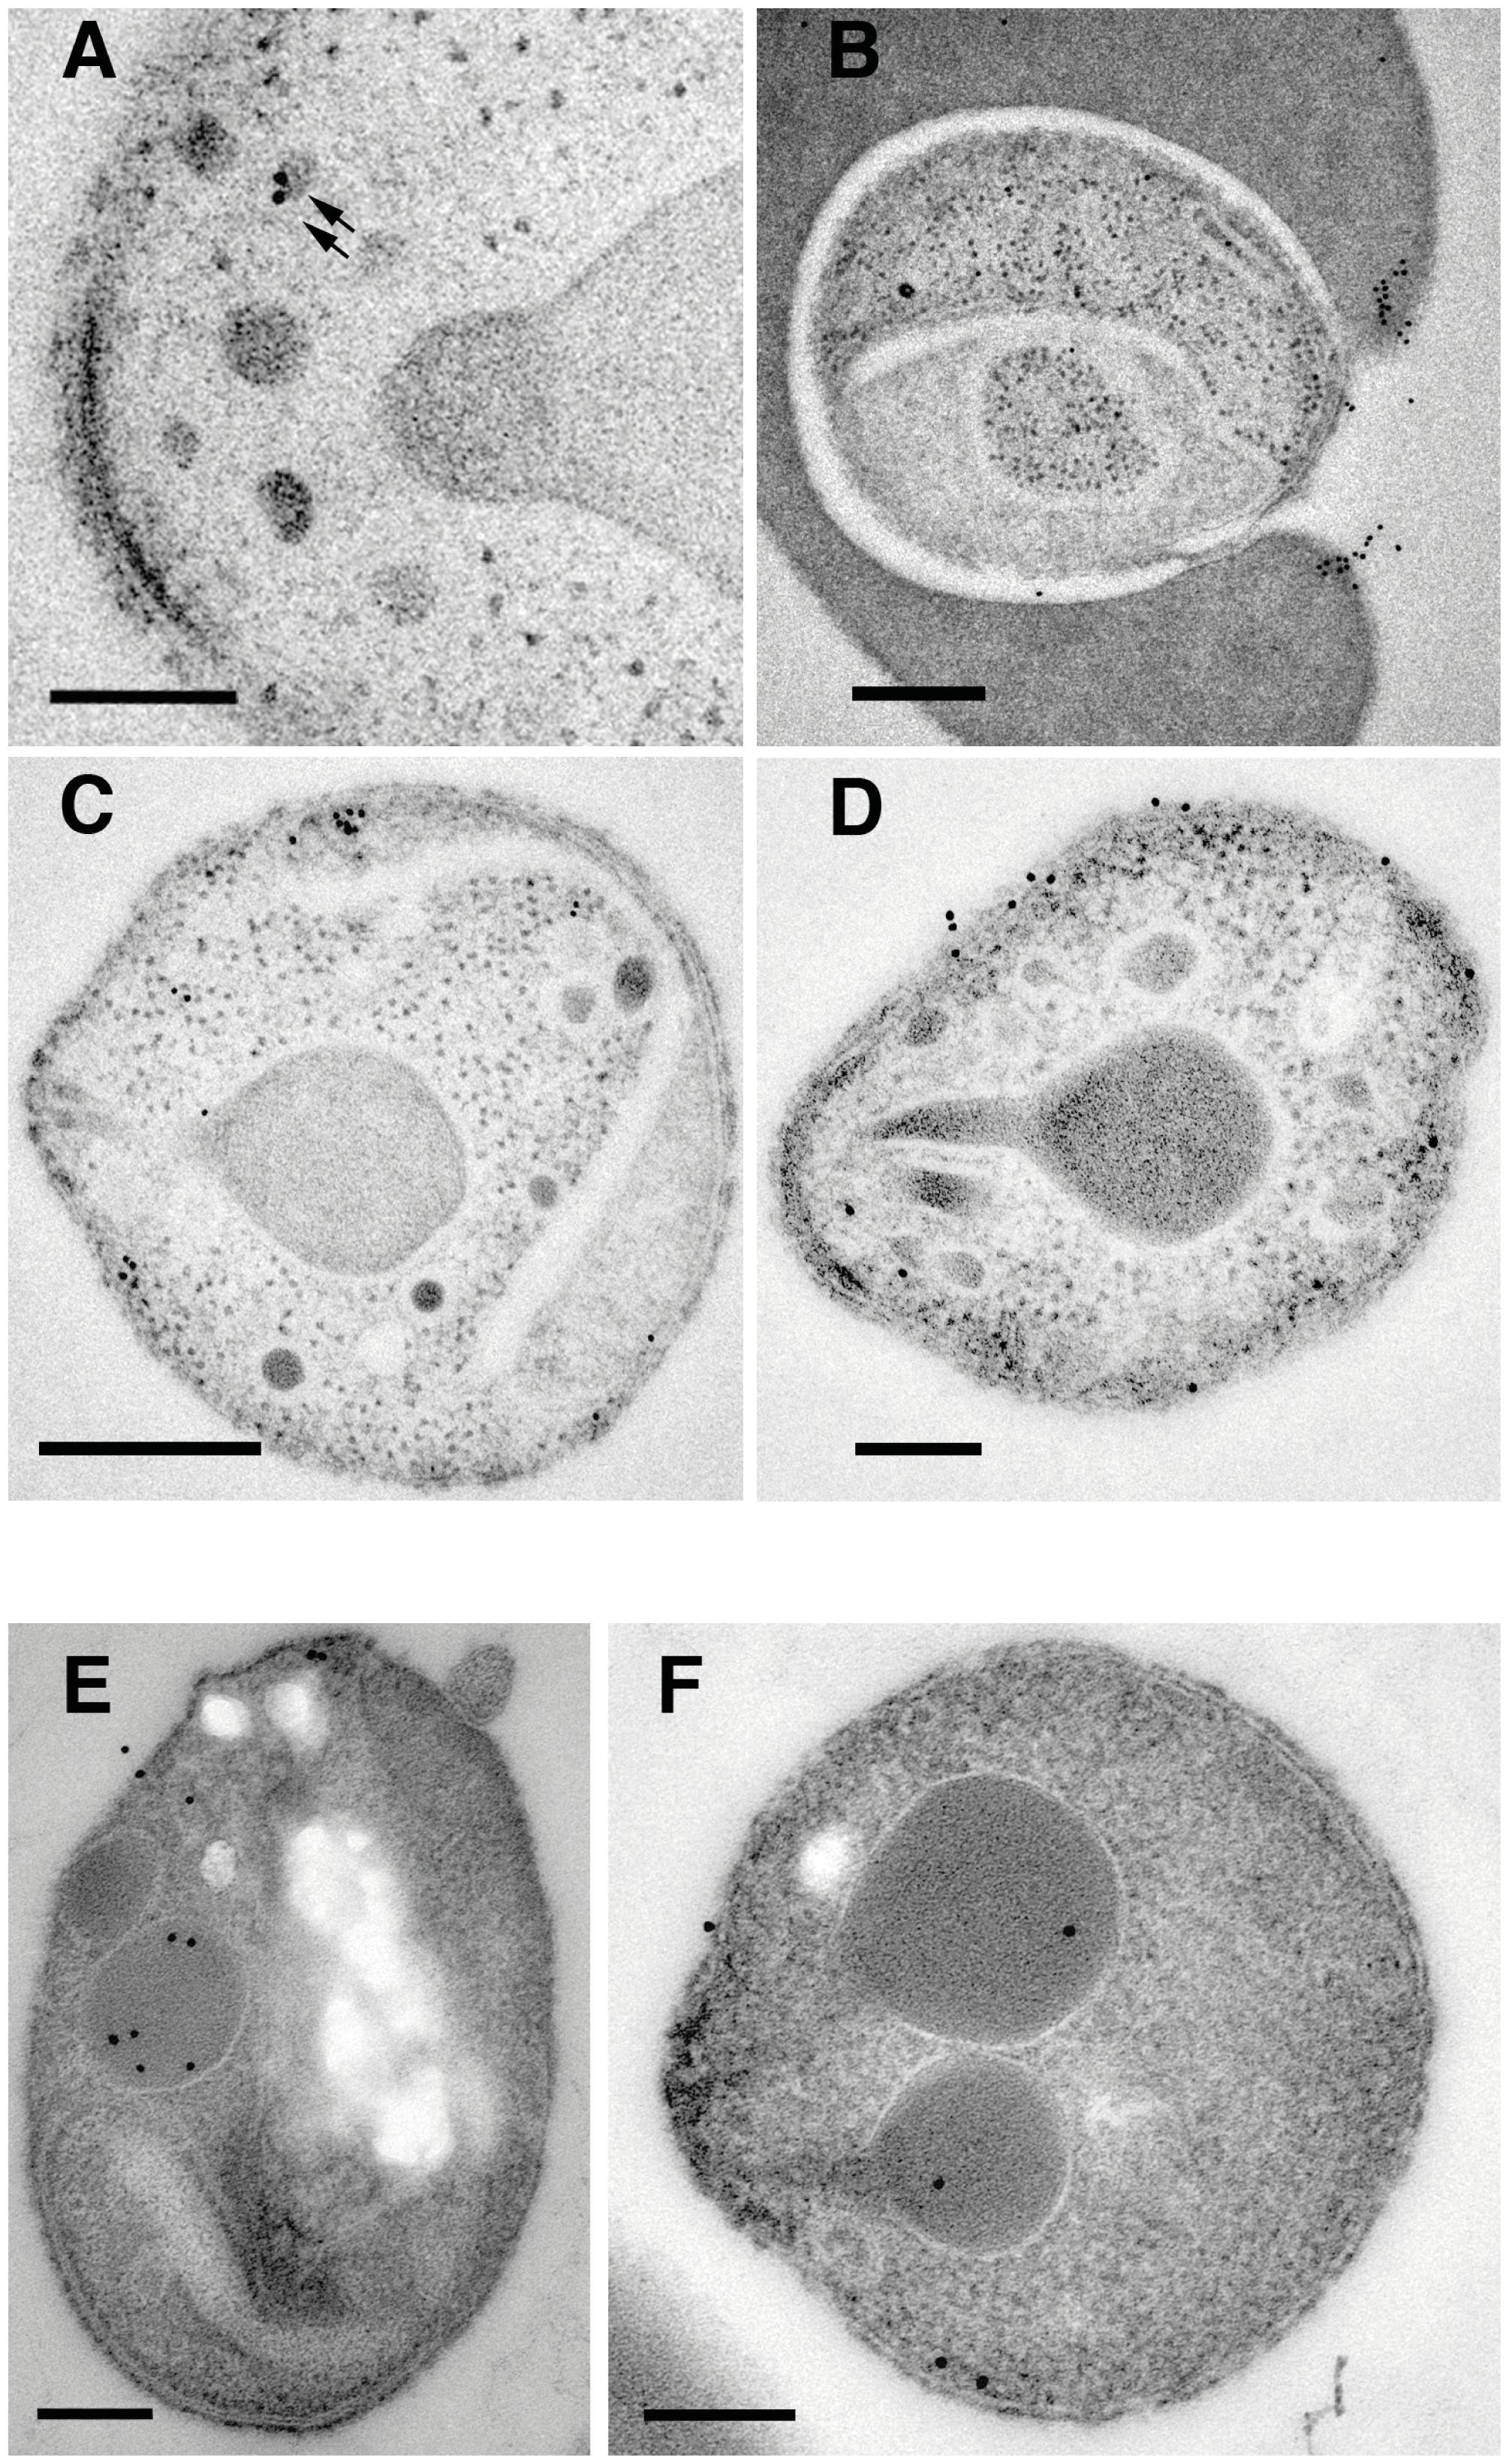 Subcellular localization of PfRipr and PfRh5 by immuno-electron microscopy.